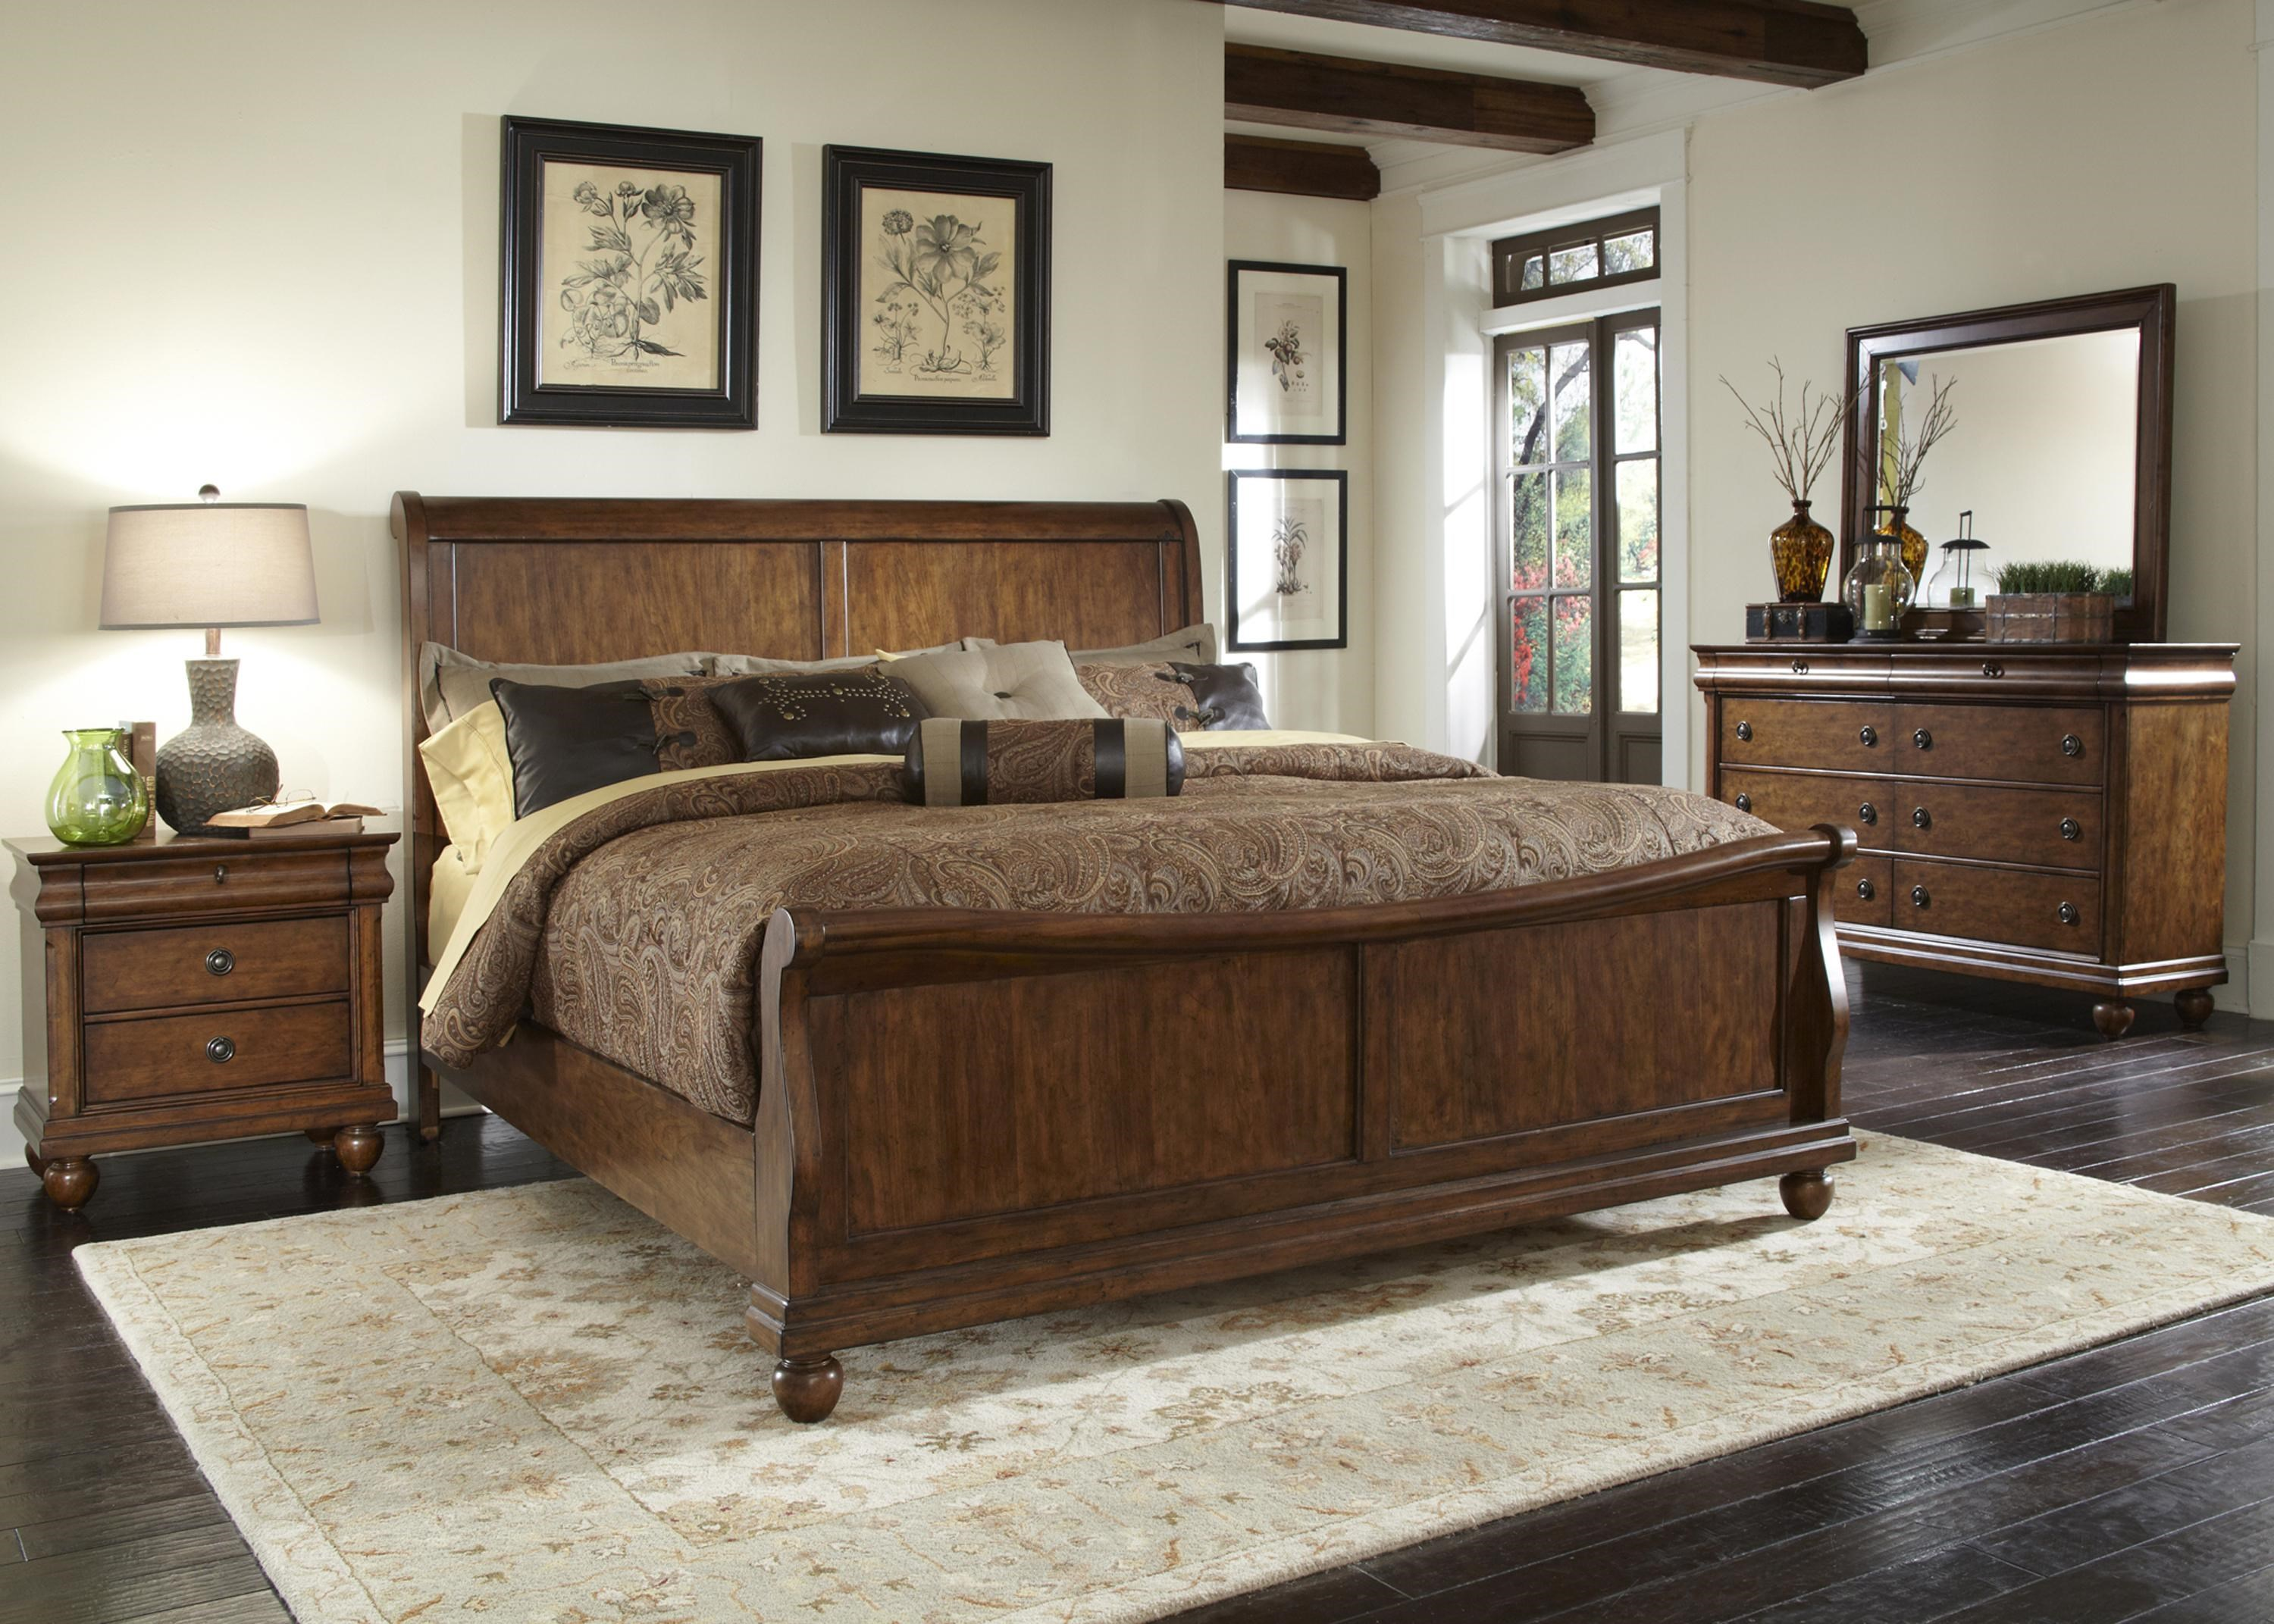 Charmant Sarah Randolph Designs Rustic TraditionsQueen Bedroom Group 2